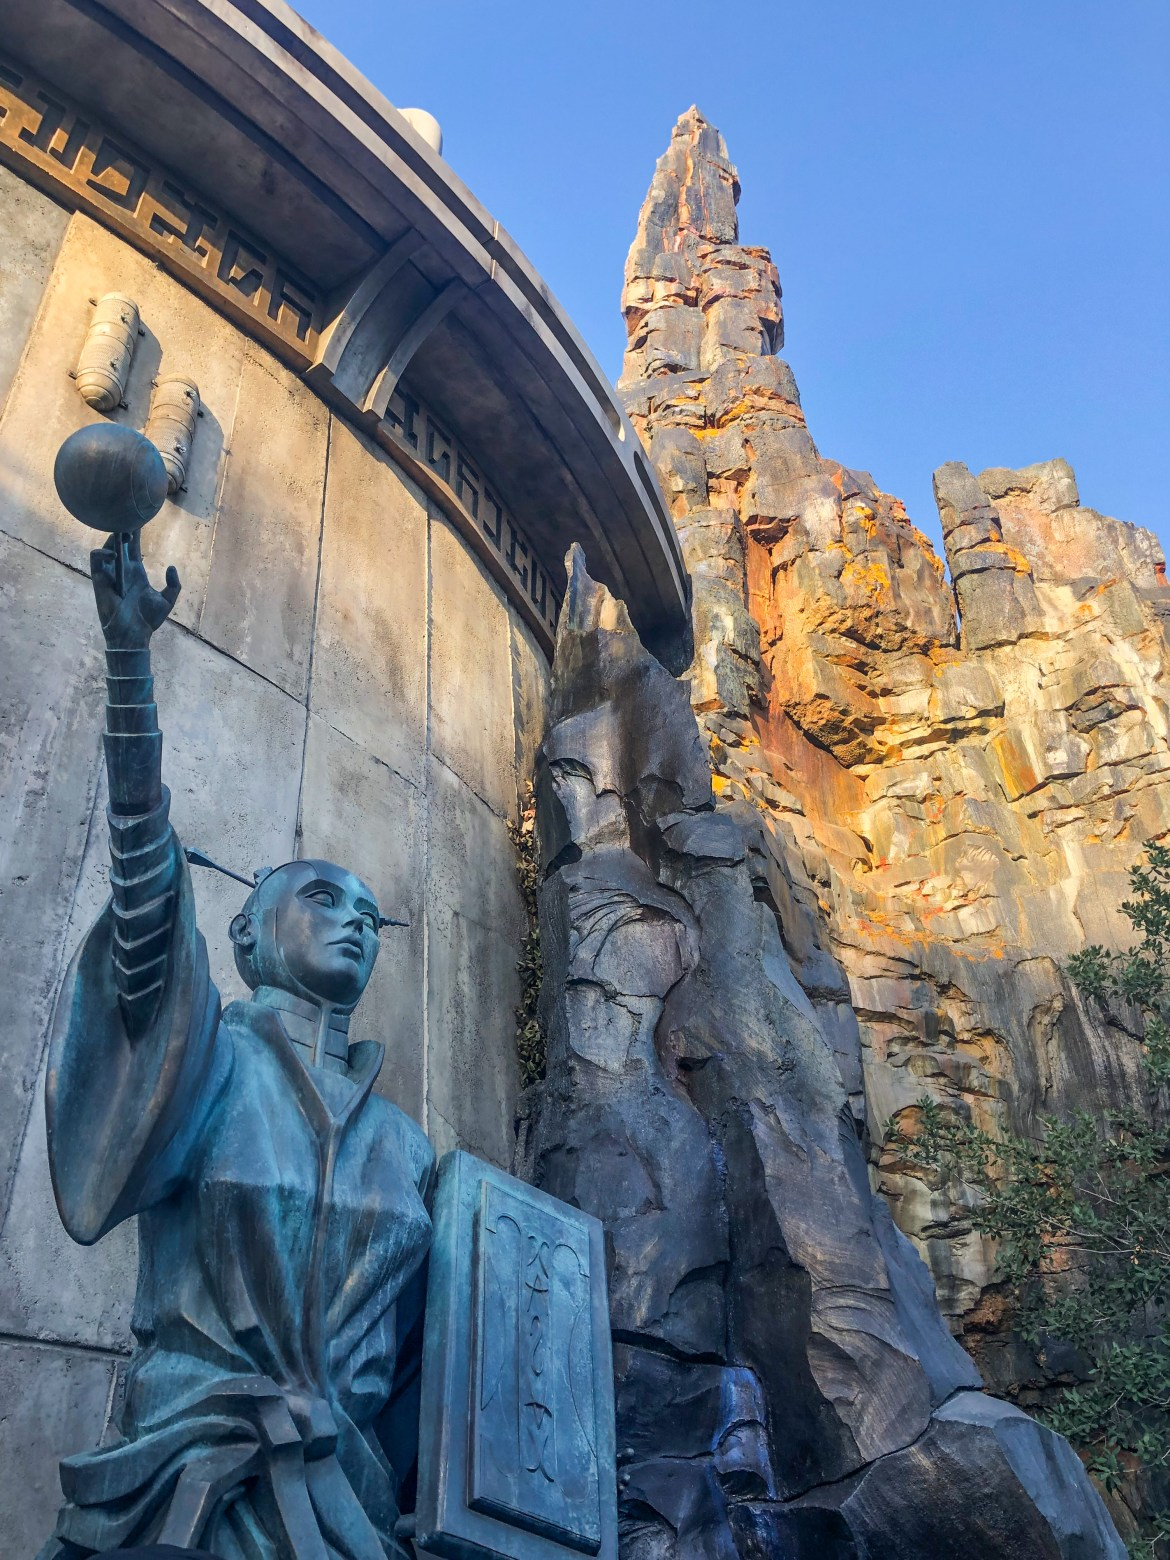 Galaxy's Edge Night Disneyland Los Angeles California #galaxysedge #hilarystyleme